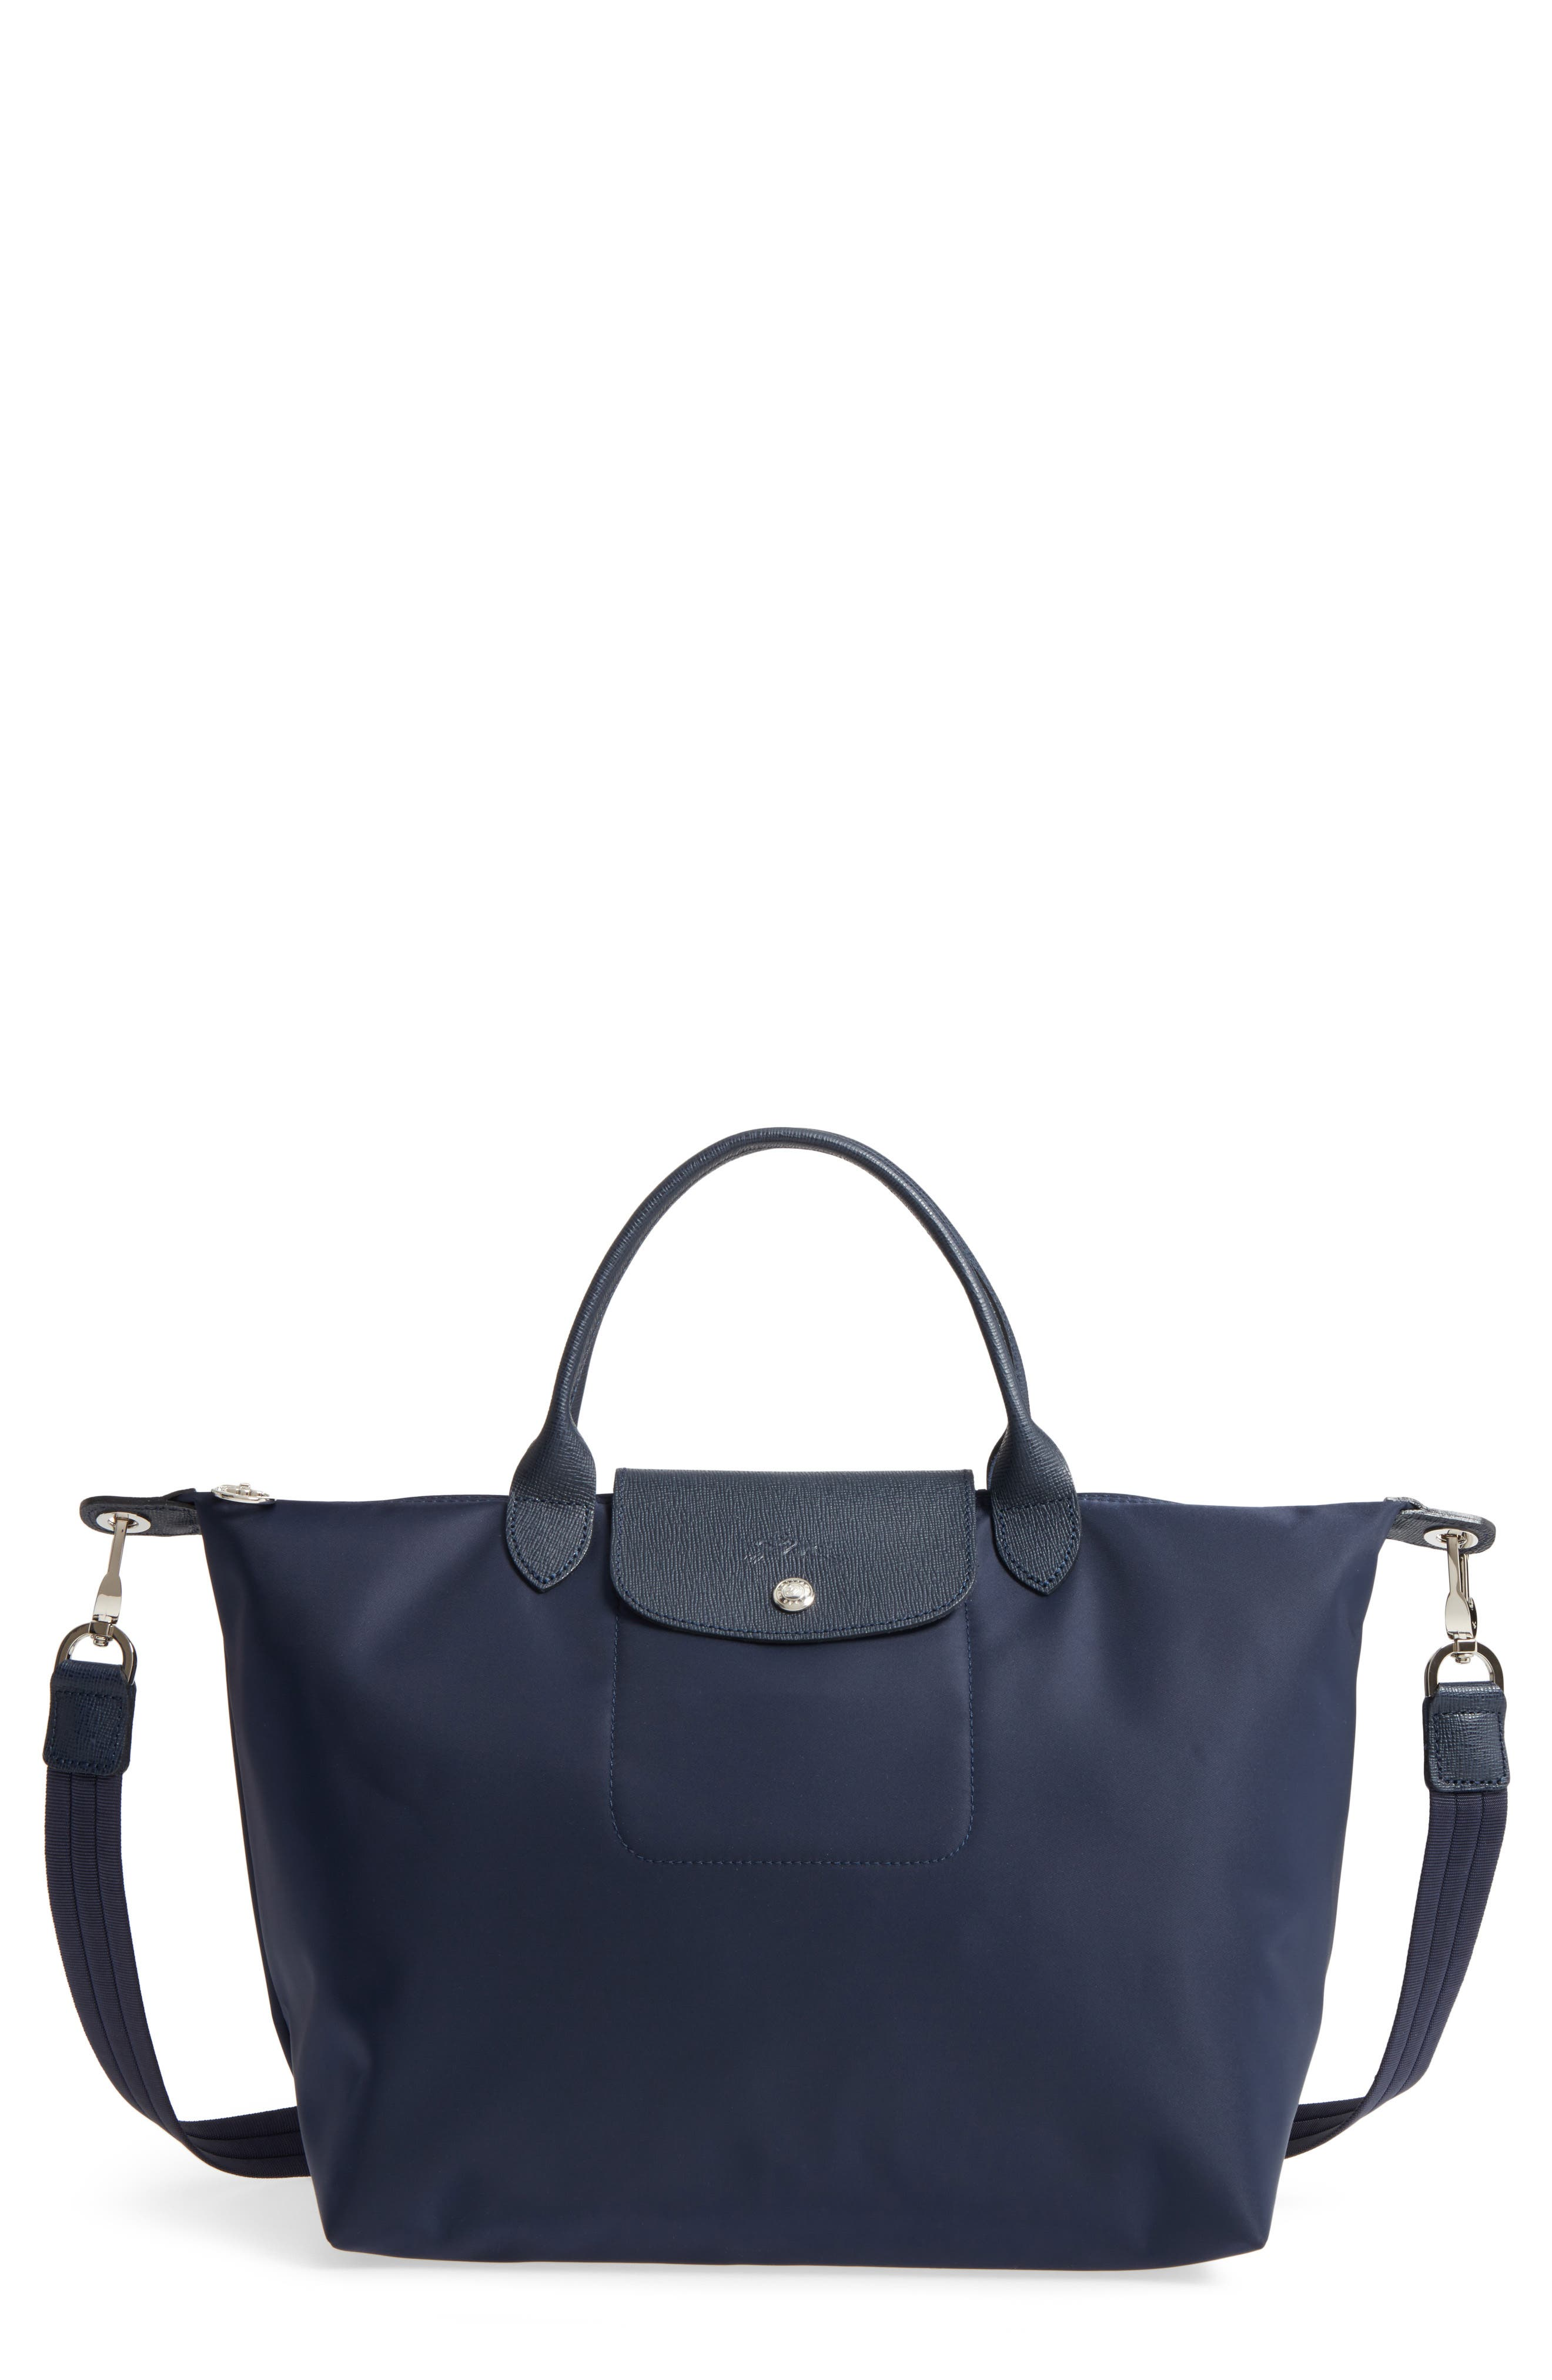 Image of LONGCHAMP Le Pliage Neo Small Tote Bag